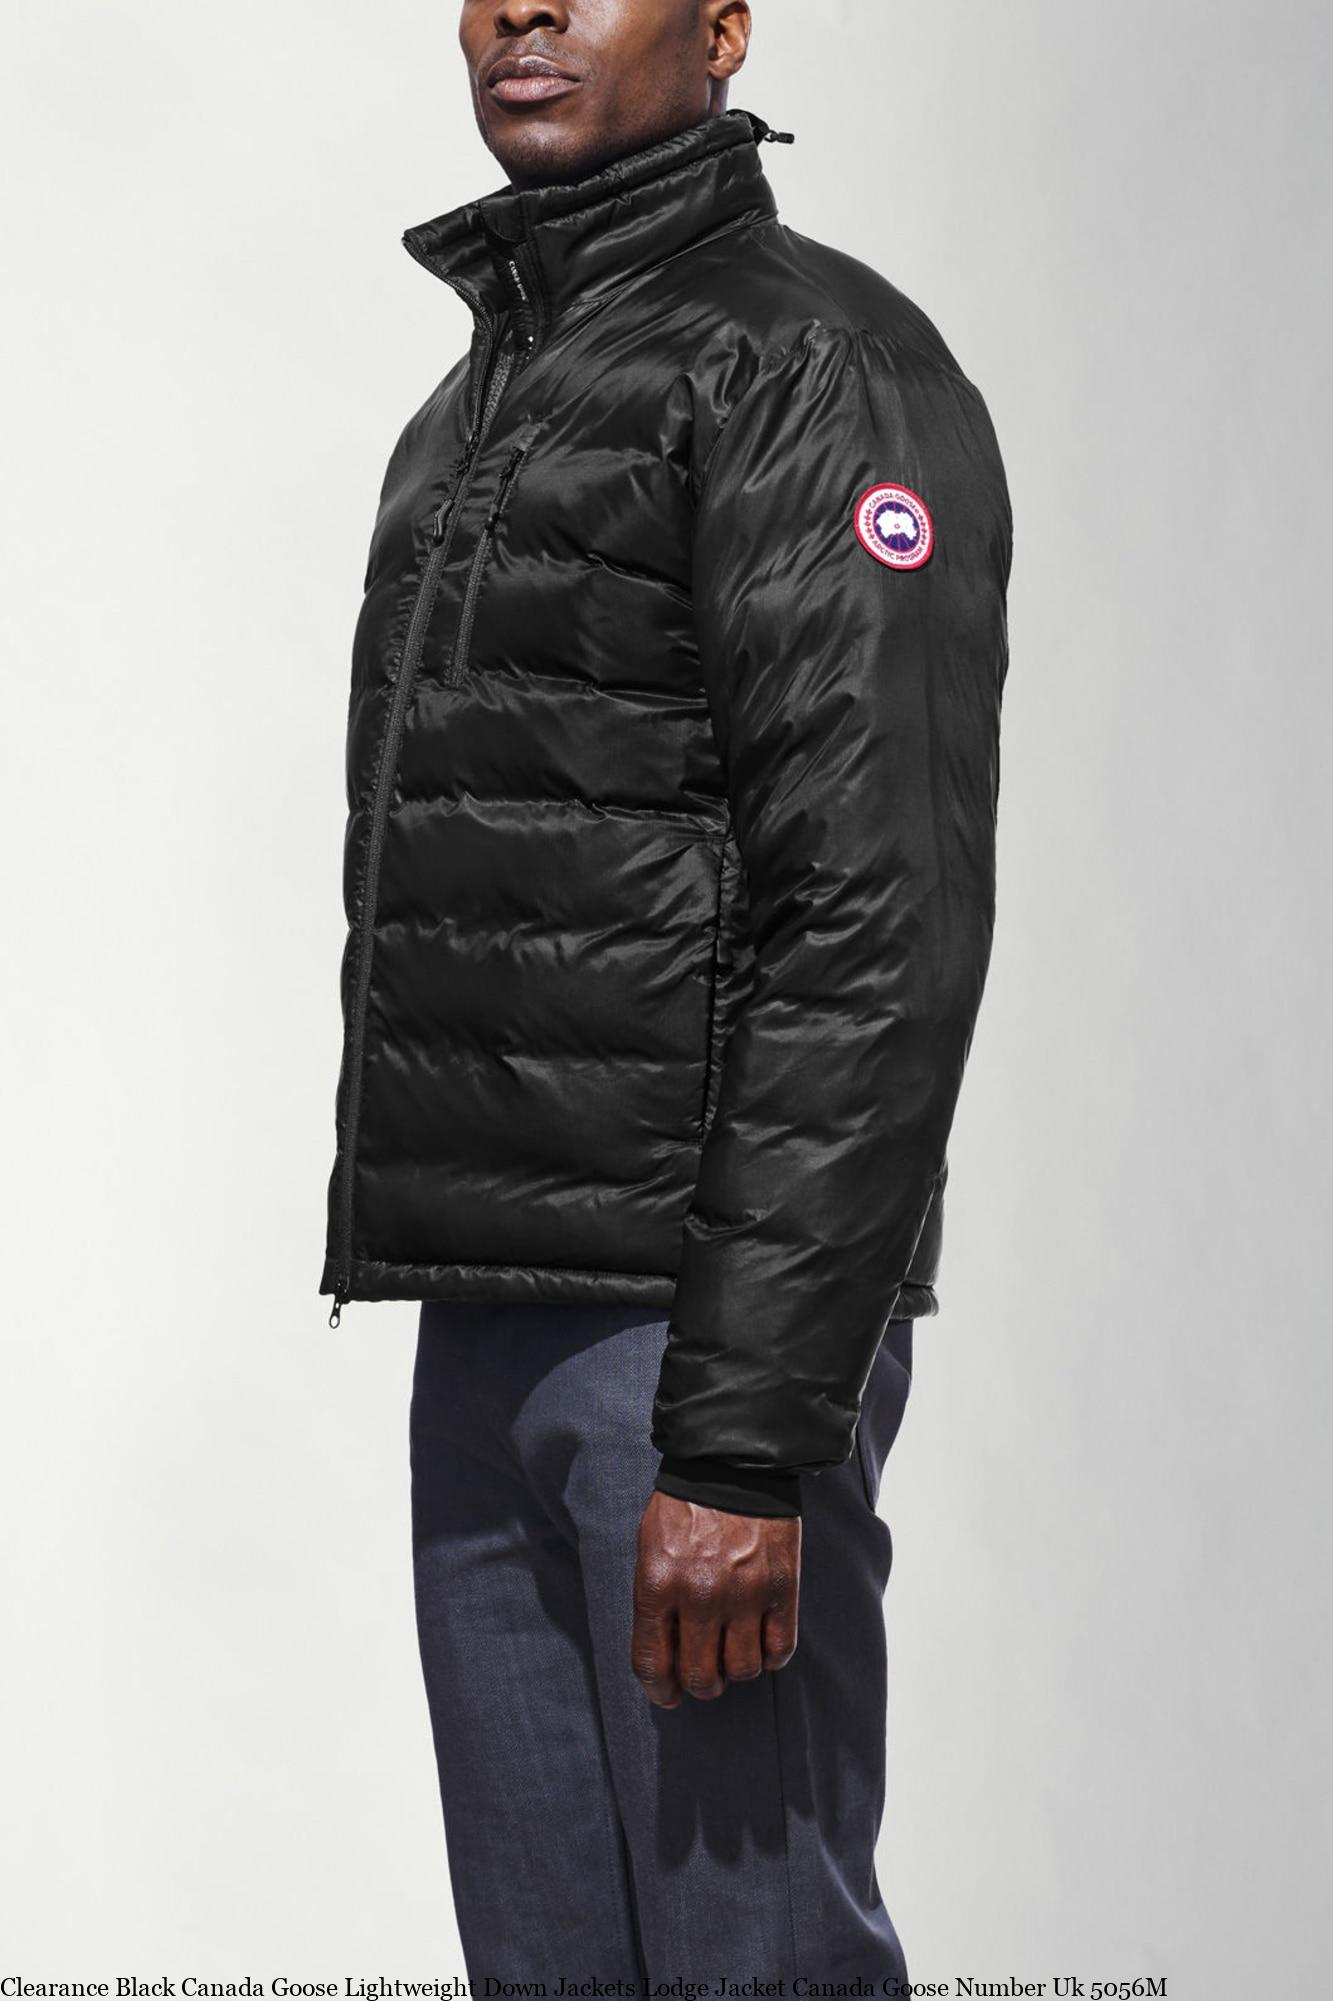 b30f01ab591 Clearance Black Canada Goose Lightweight Down Jackets Lodge Jacket Canada  Goose Number Uk 5056M – Canada Goose Clearance – Cheap Canada Goose Jackets  Outlet ...